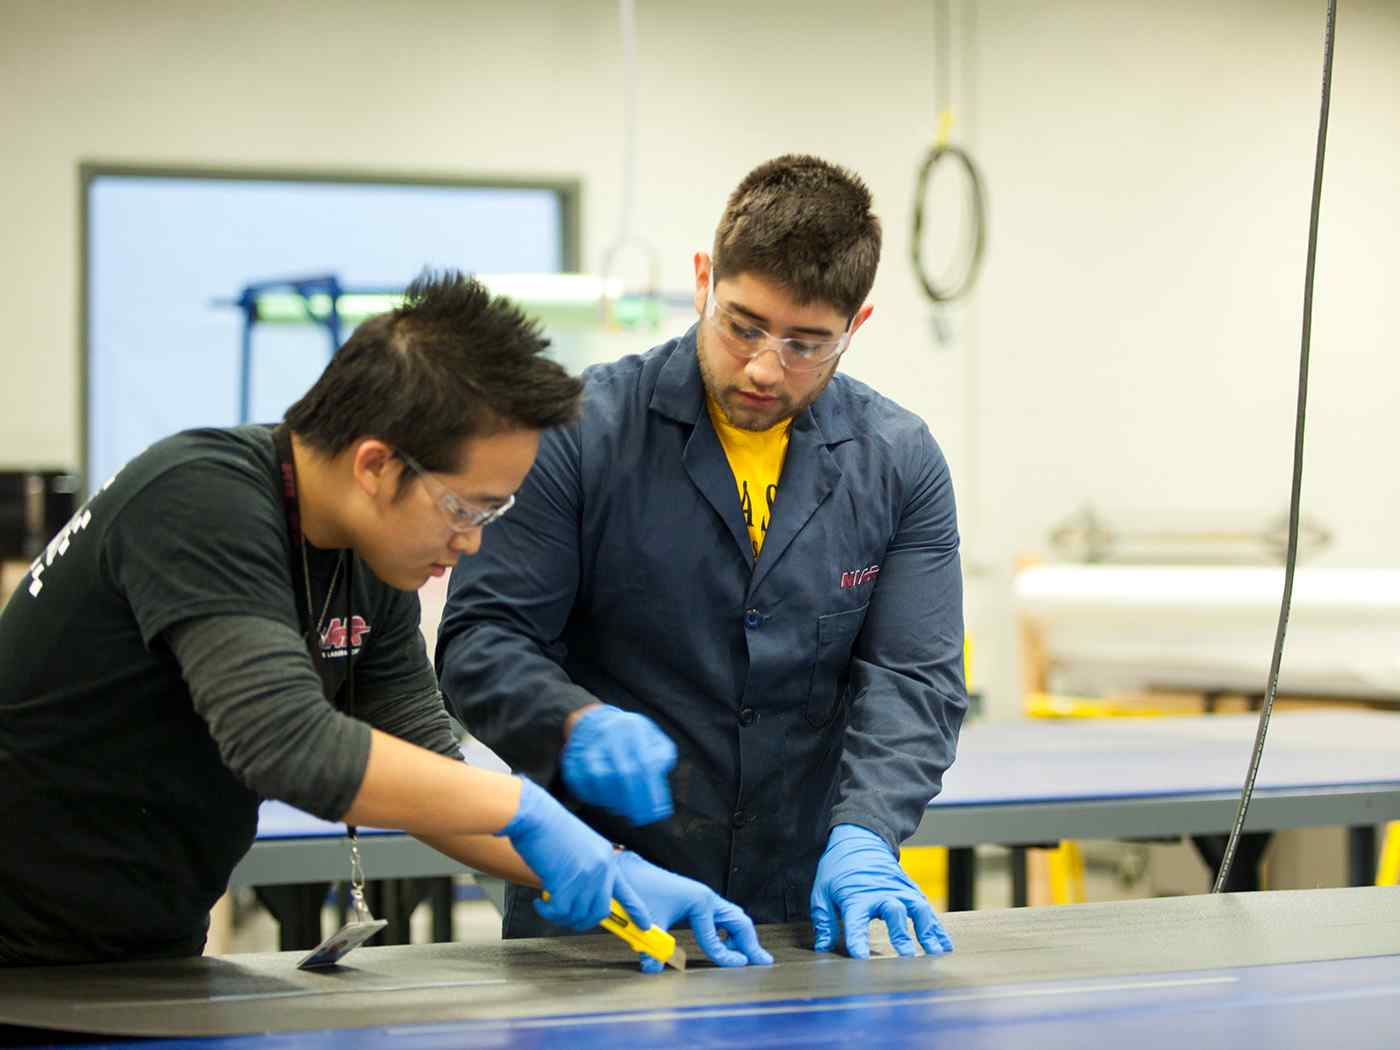 Graduate Engineering students working in NIAR lab.